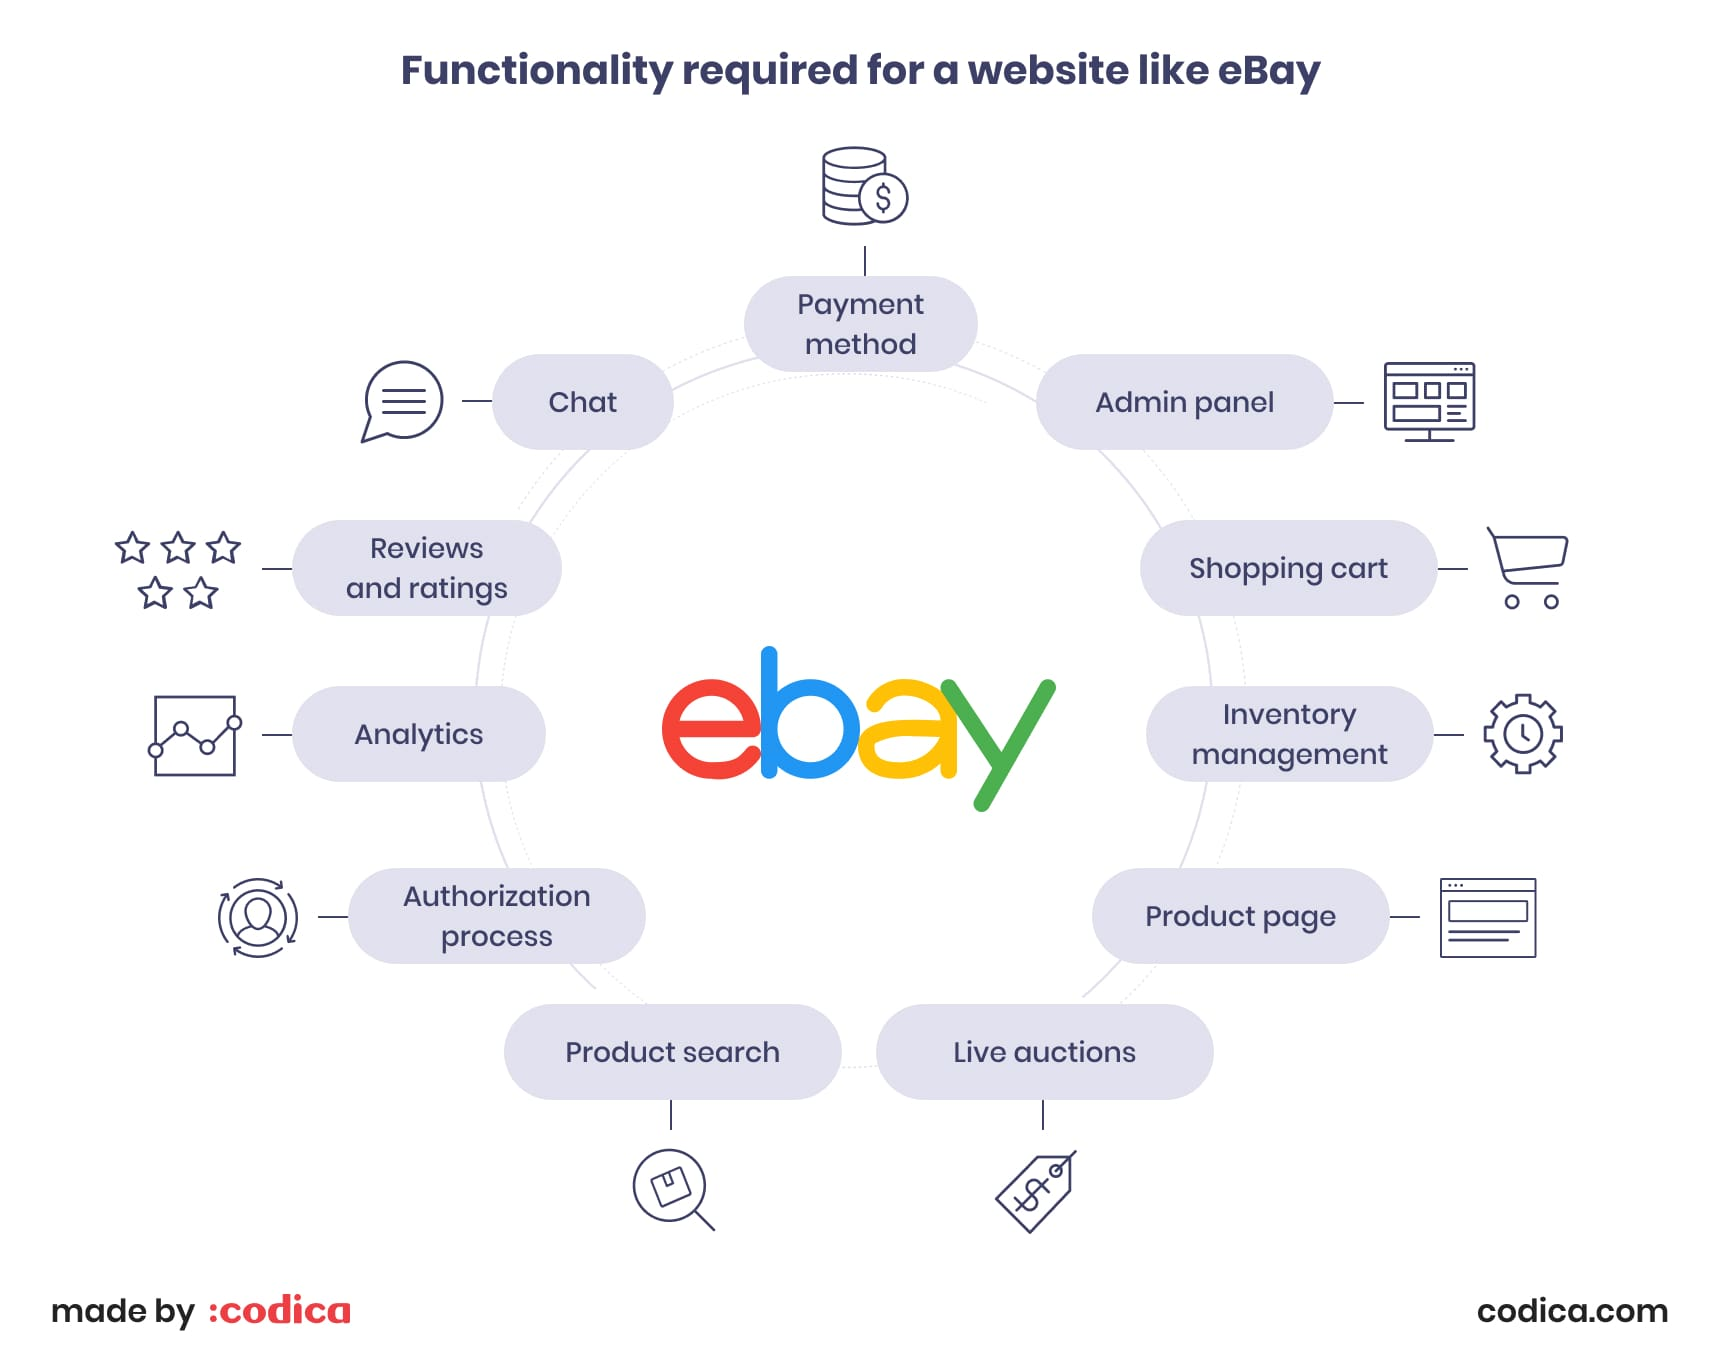 Functionality required for a website like eBay